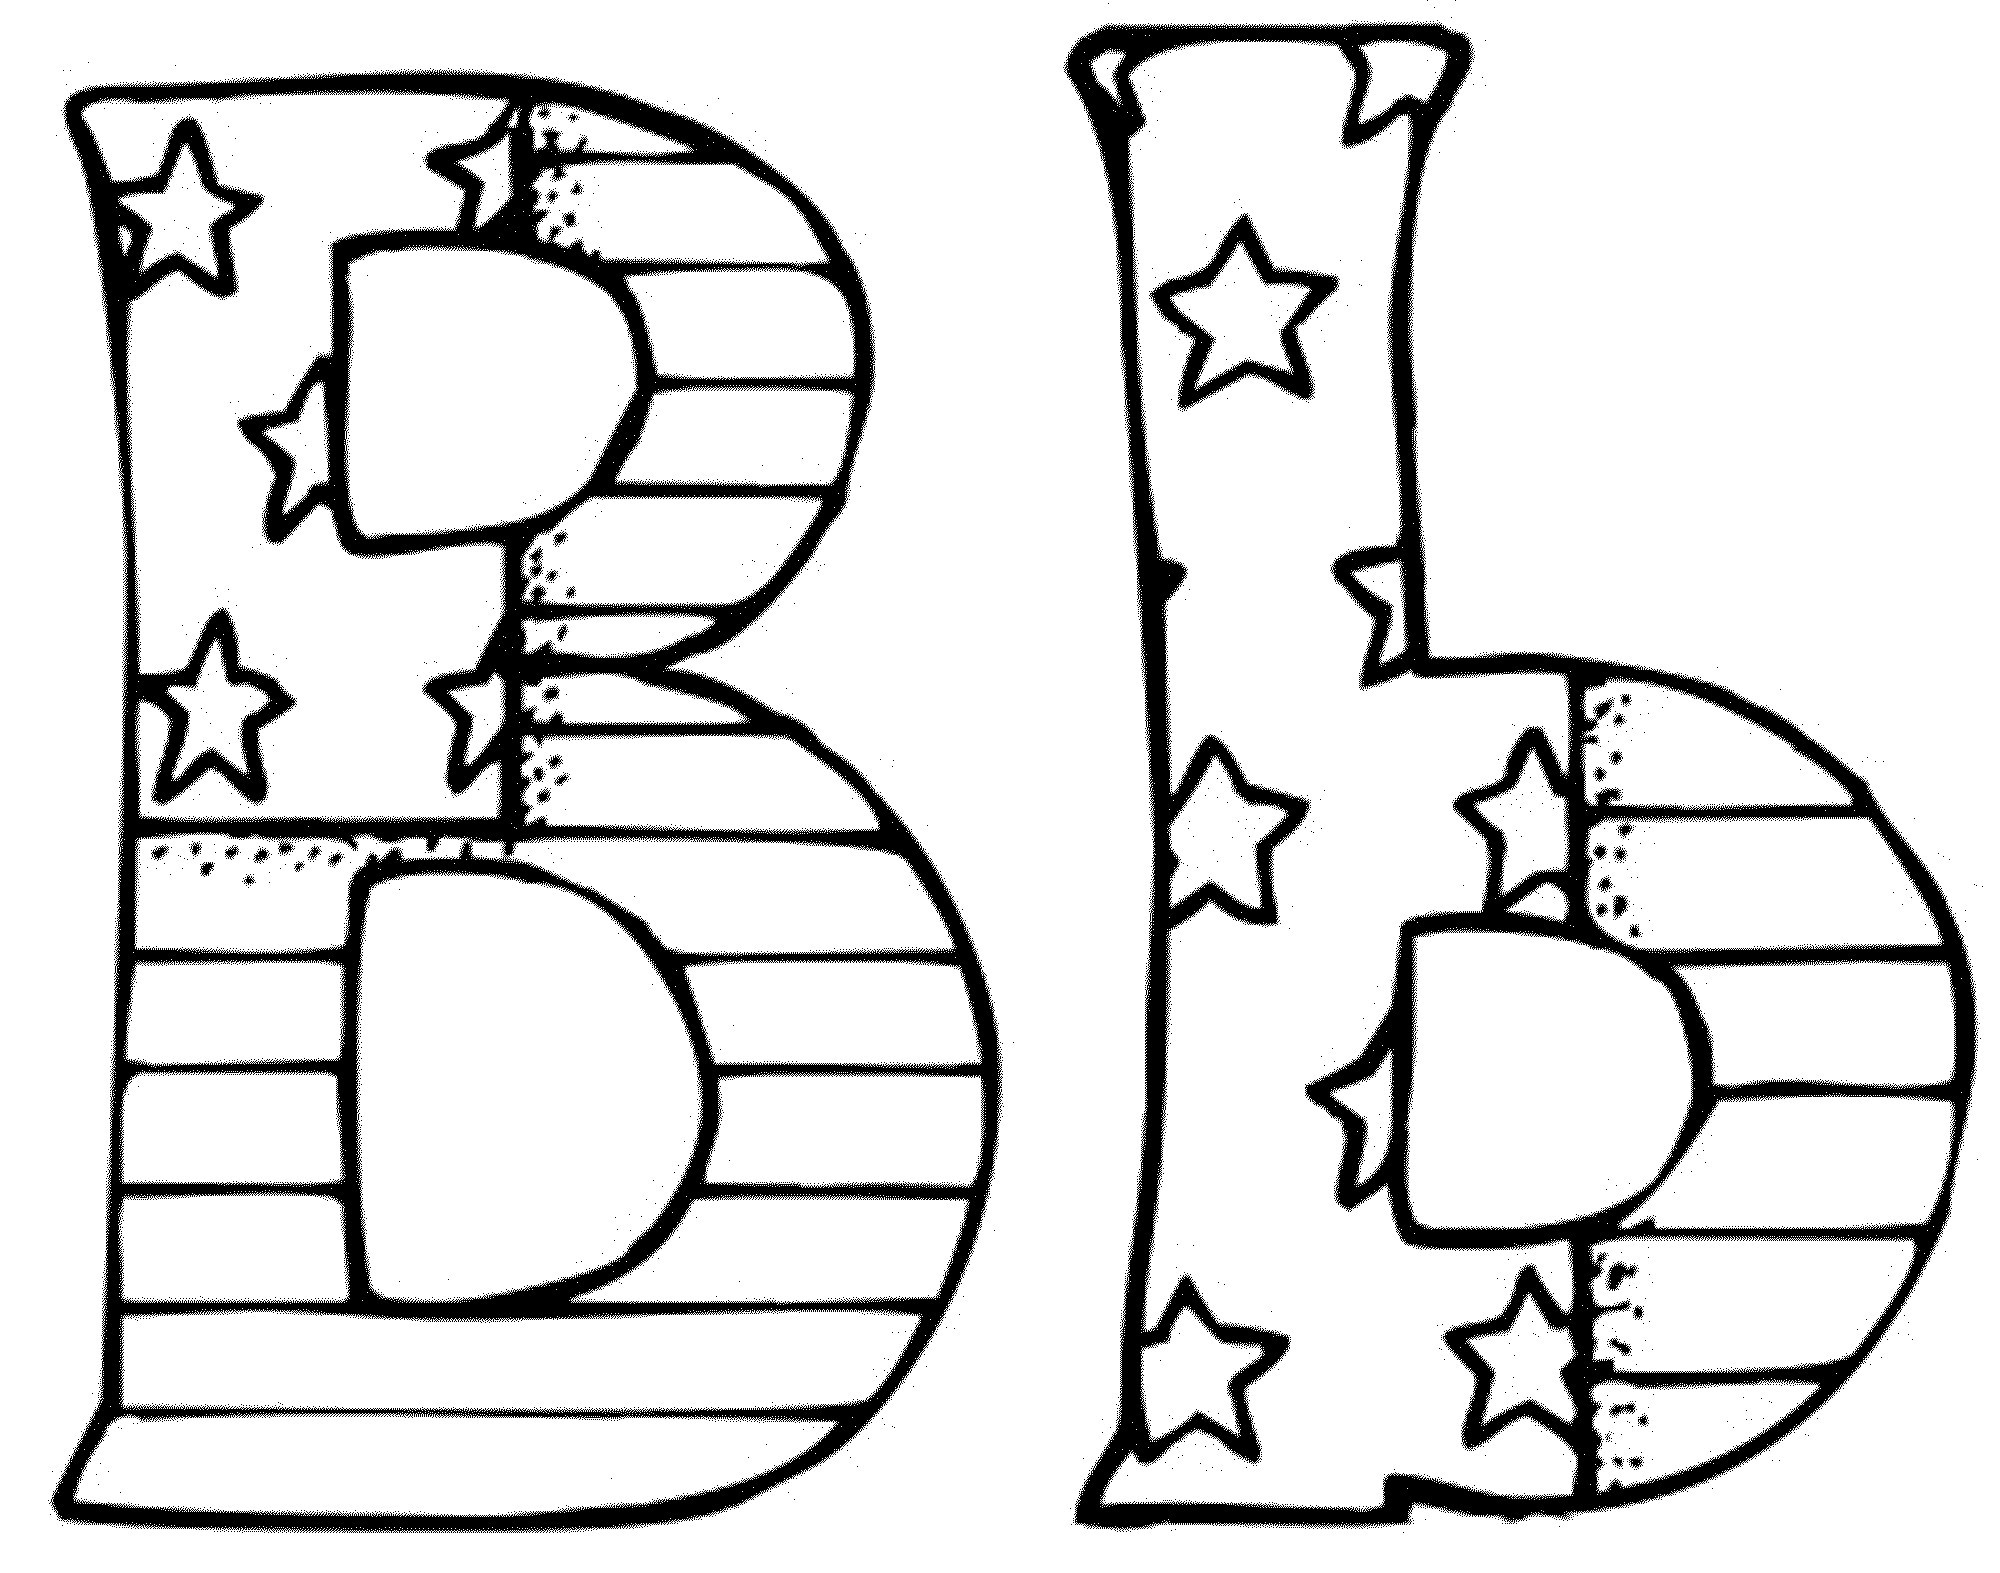 2000x1573 Letter B Is For Beaver Coloring Page With Eson Me Best Of Pages